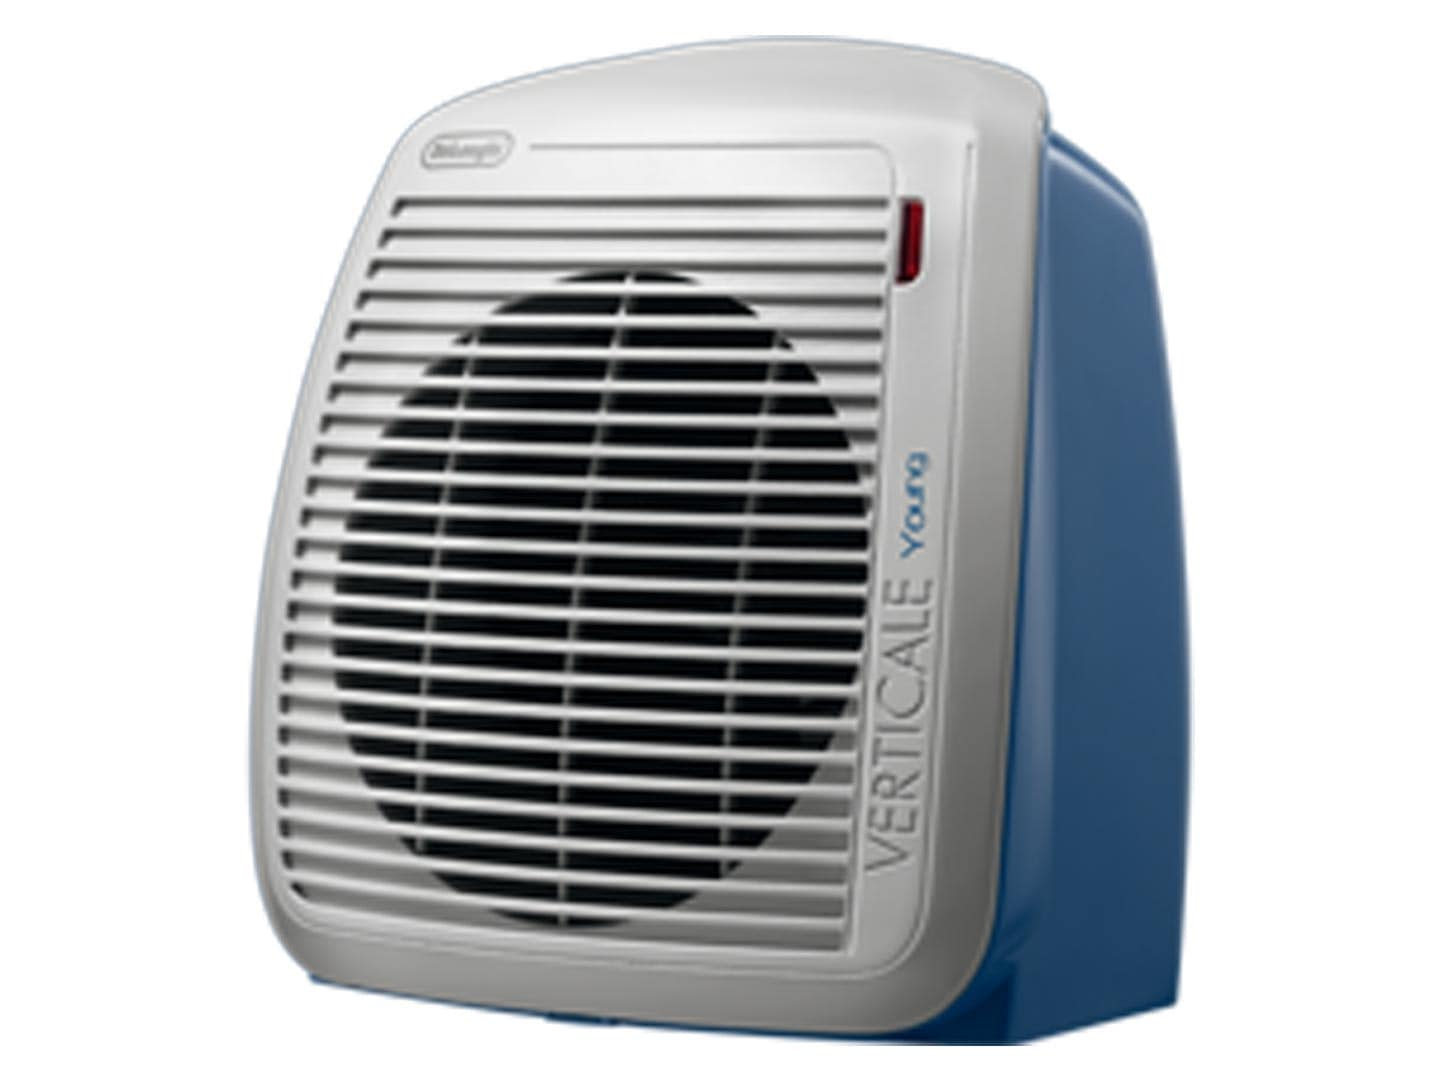 electric fan heaters 89 ford bronco wiring diagram verticale young compact heater blue hvy1030bl de longhi us bl portable